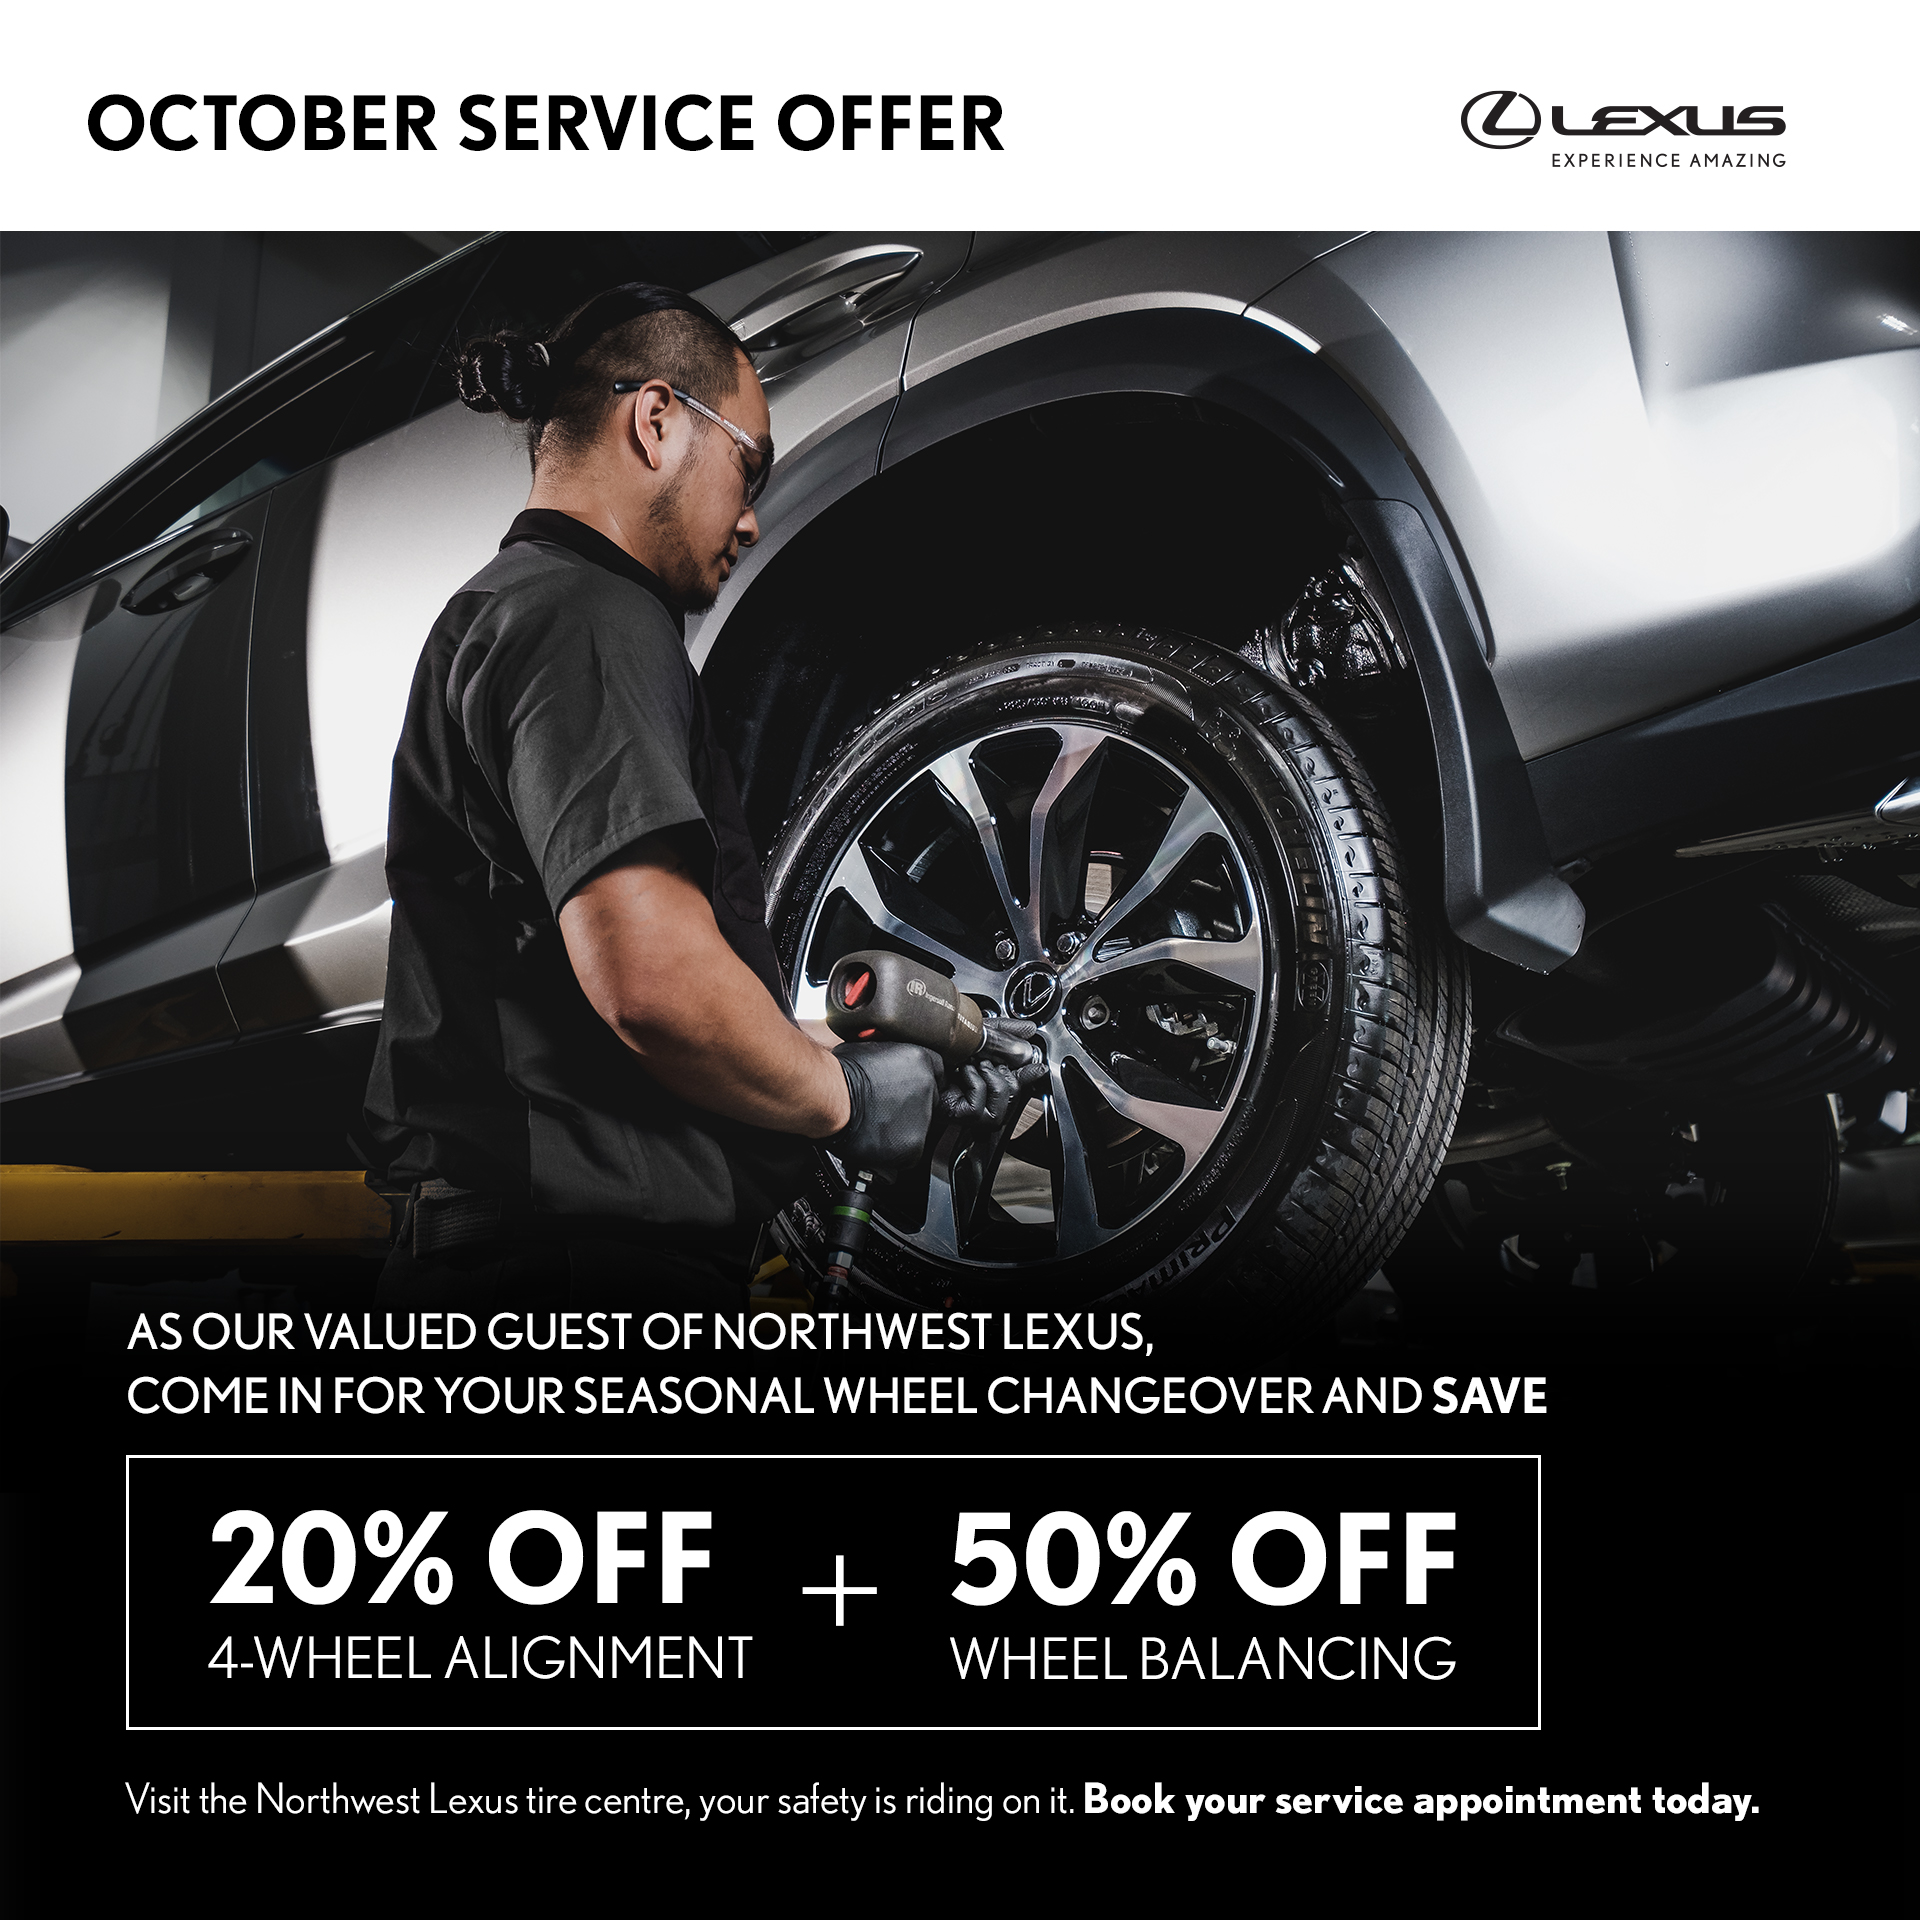 October 4-Wheel Alignment and Wheel Balancing Offer